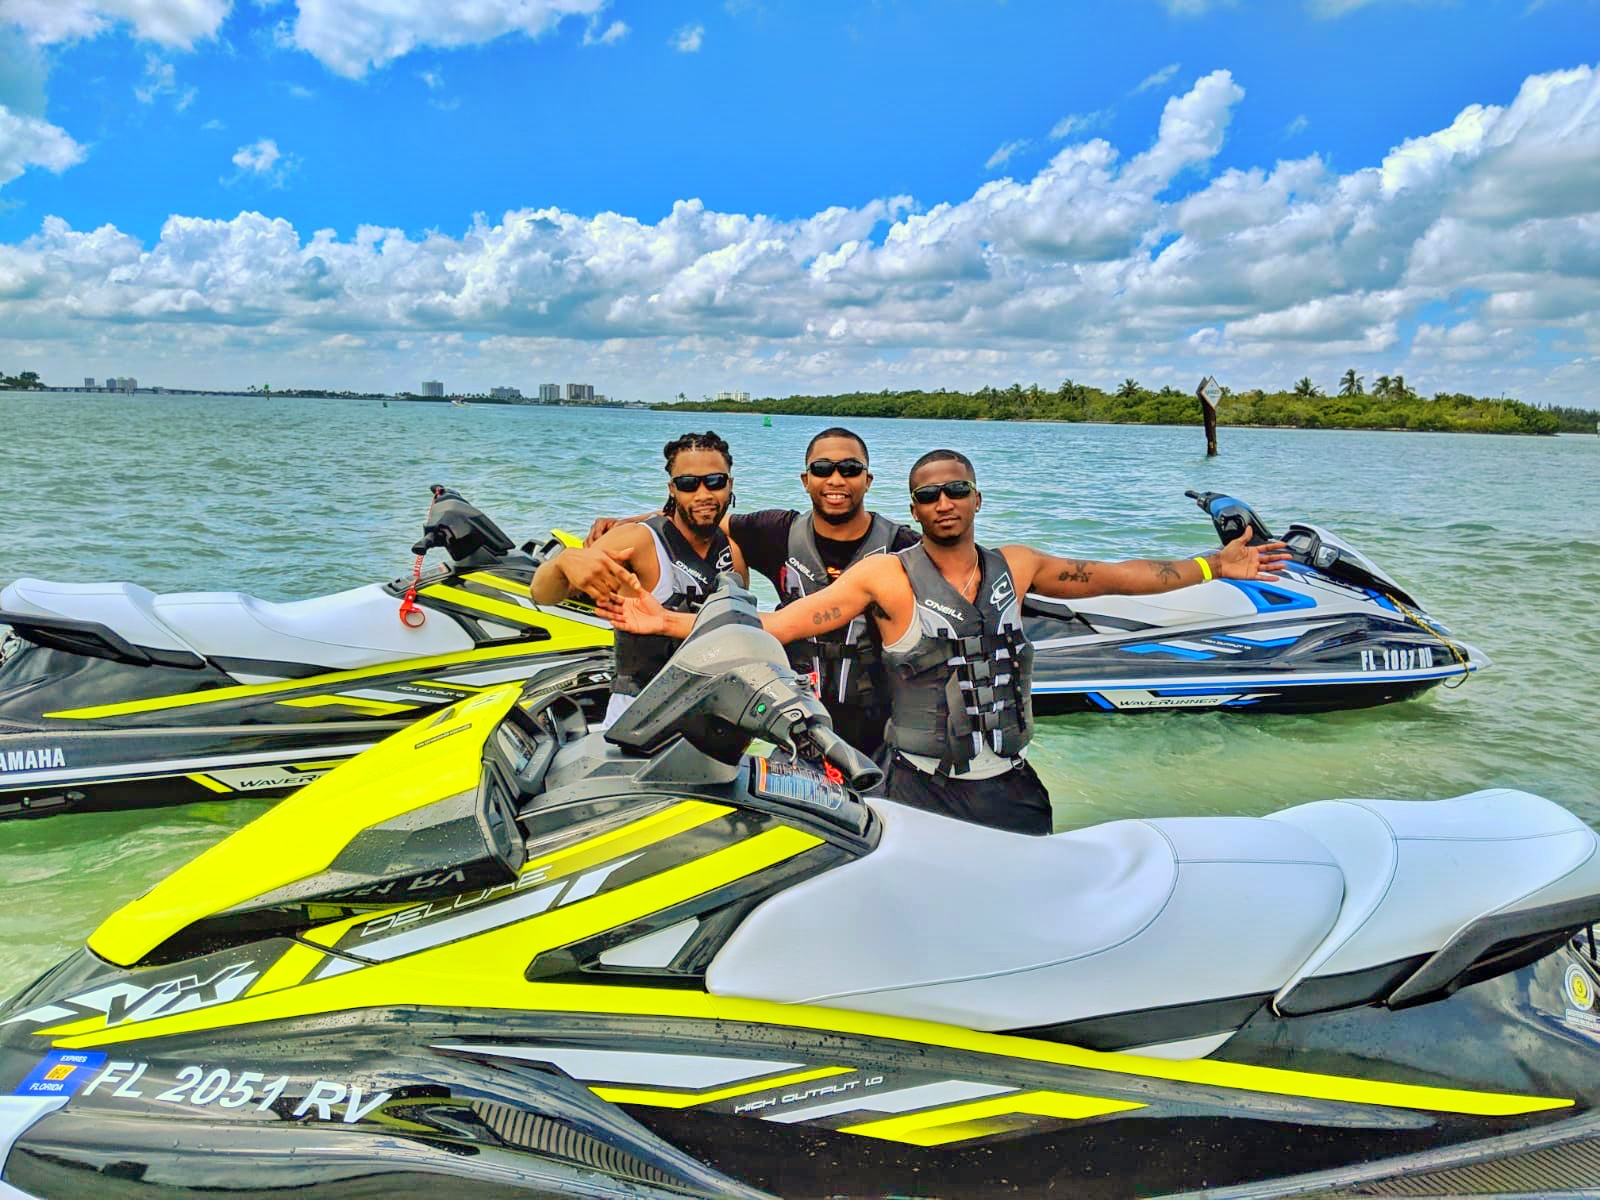 extreme-jet-ski-rentals-in-south-beach.jpg